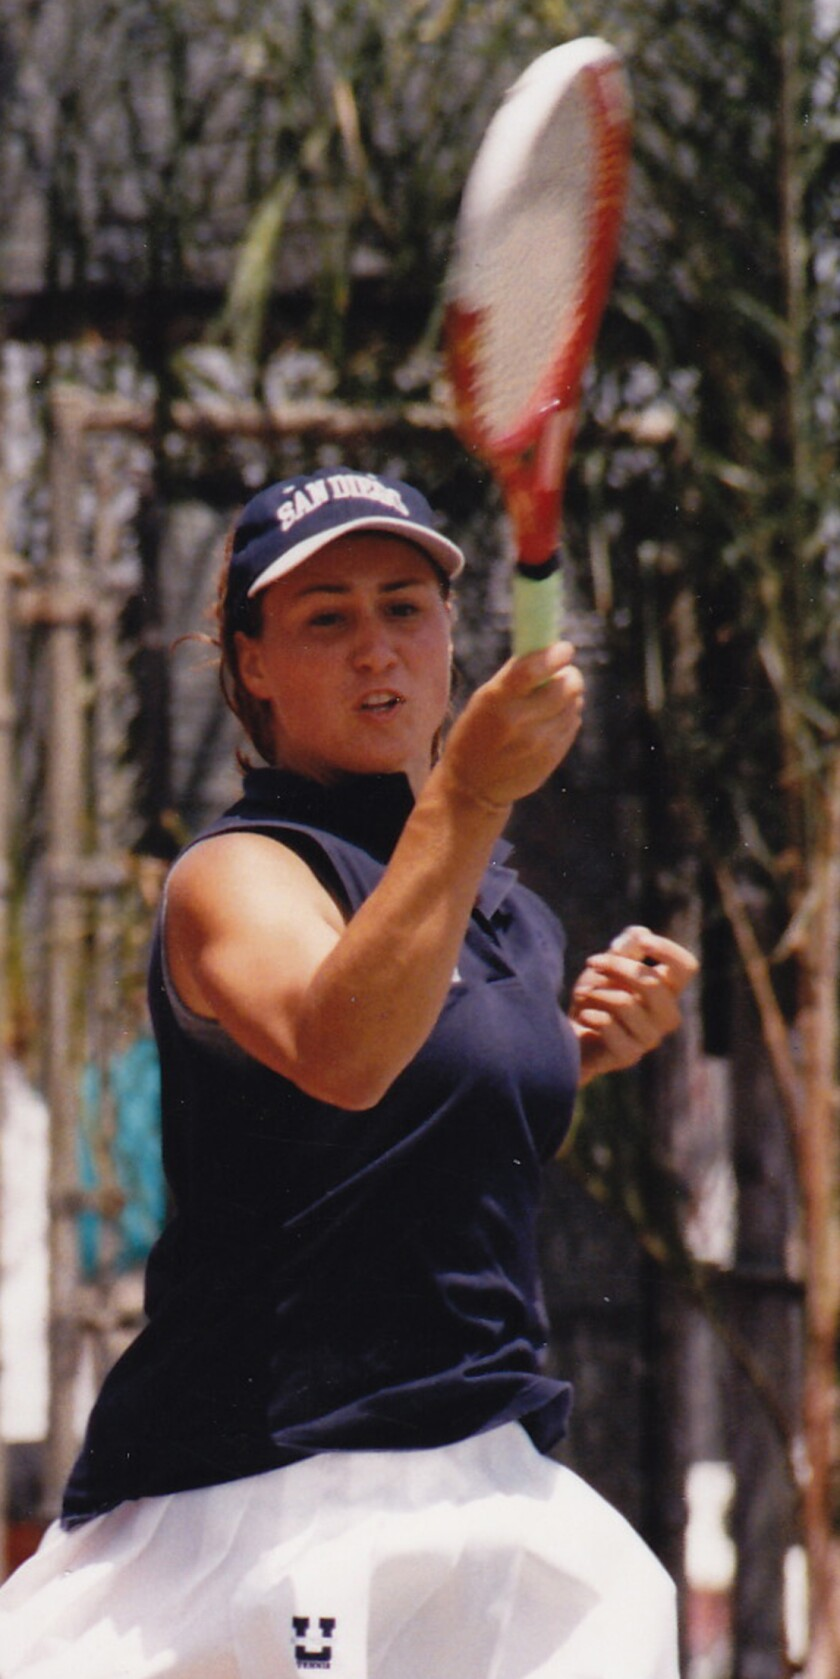 Lesenarova_action.jpg